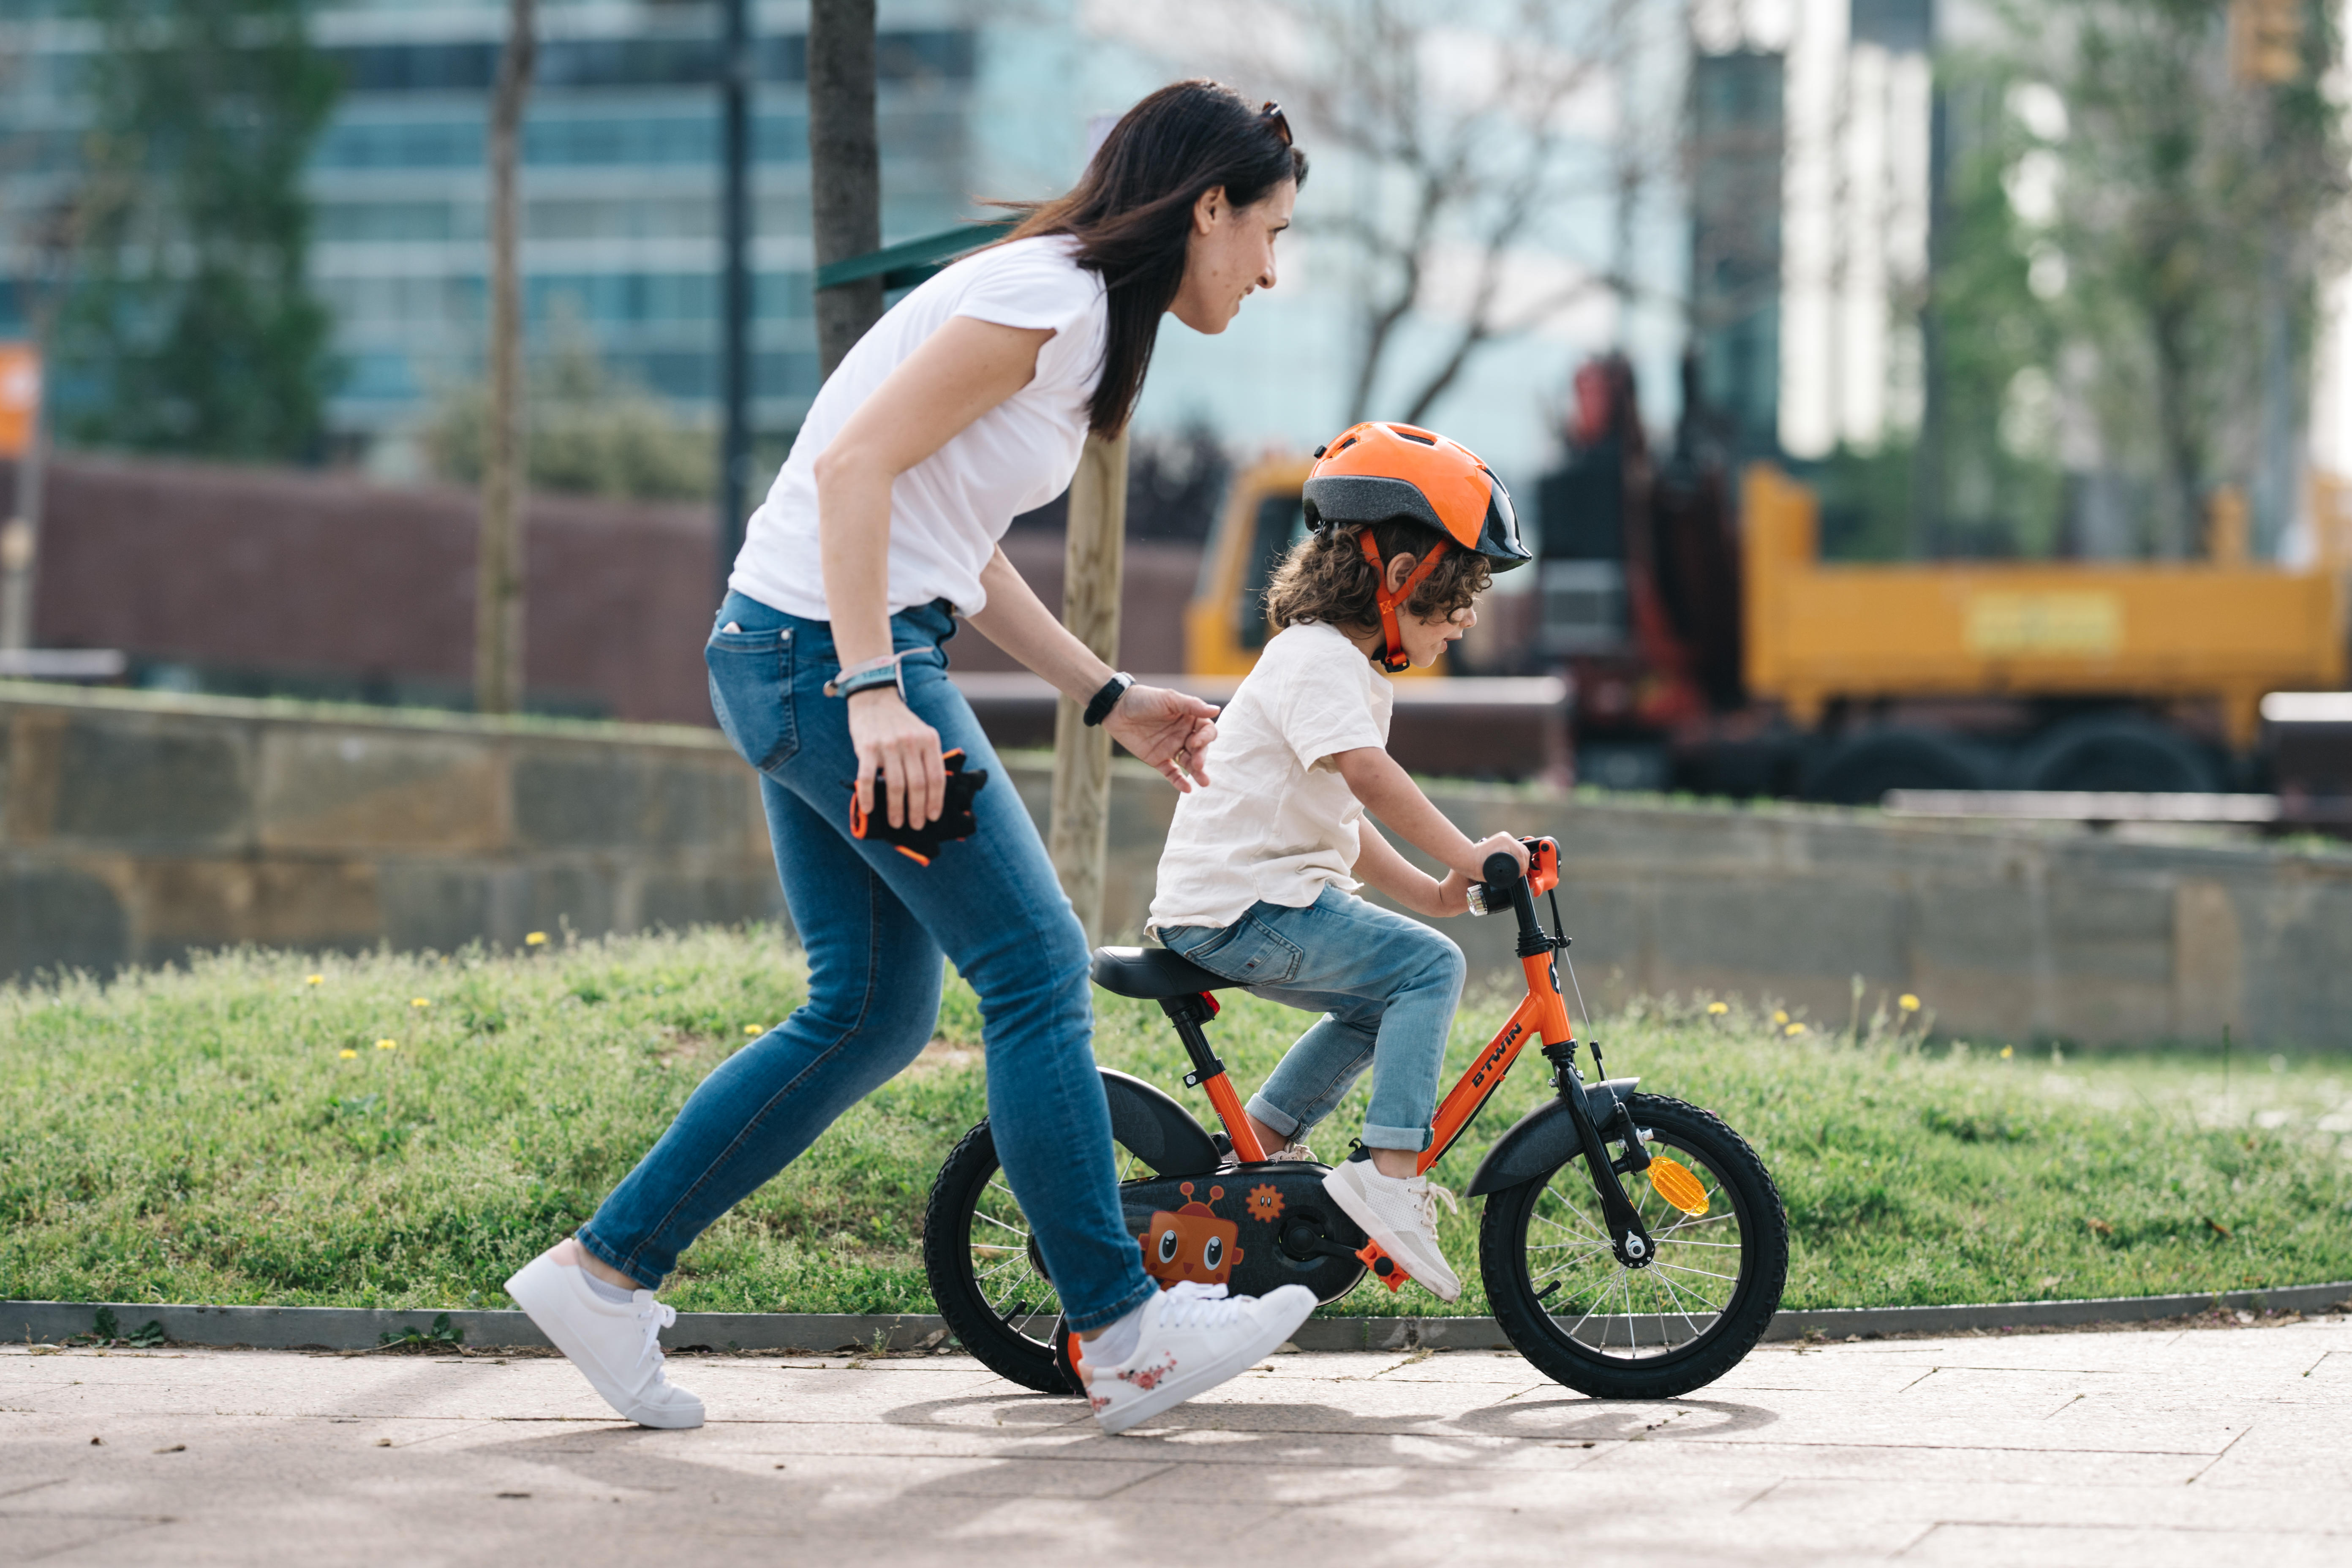 How to teach your child to ride a bike?